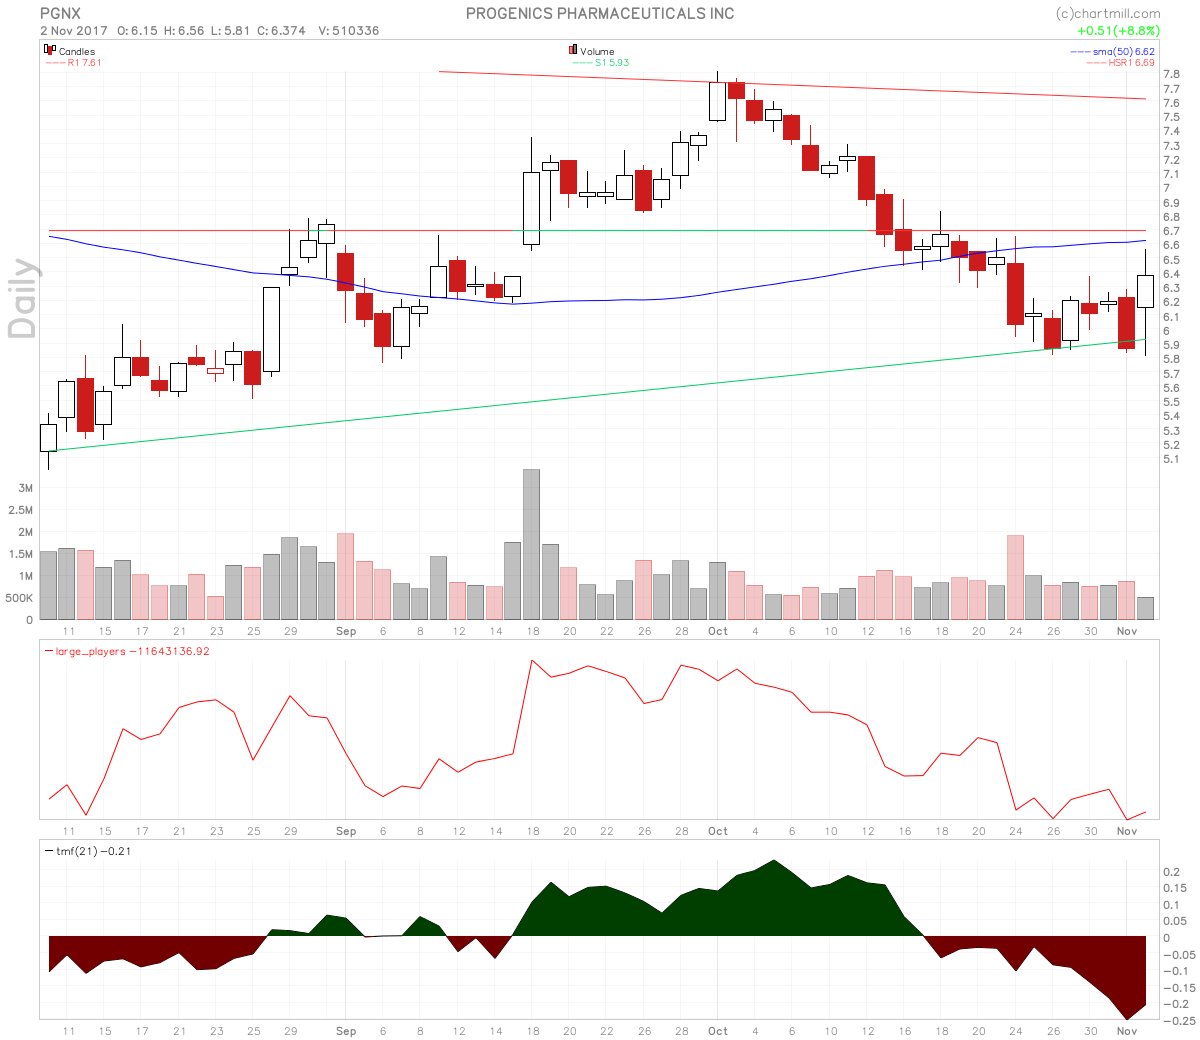 Progenics Pharmaceuticals stock chart shows pullback and consolidation.